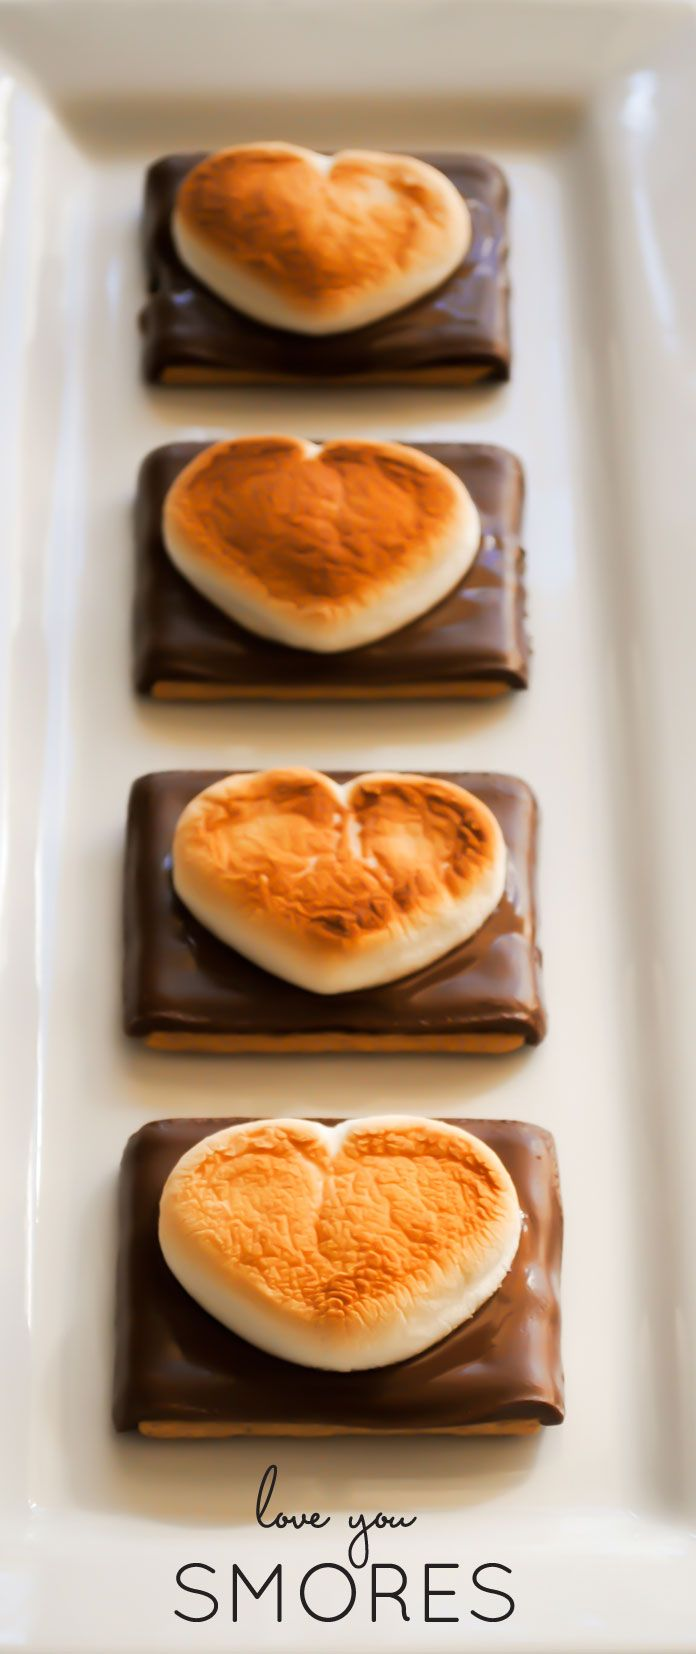 I Love You Smores 25+ Heart-Shaped Food Ideas | NoBiggie.net